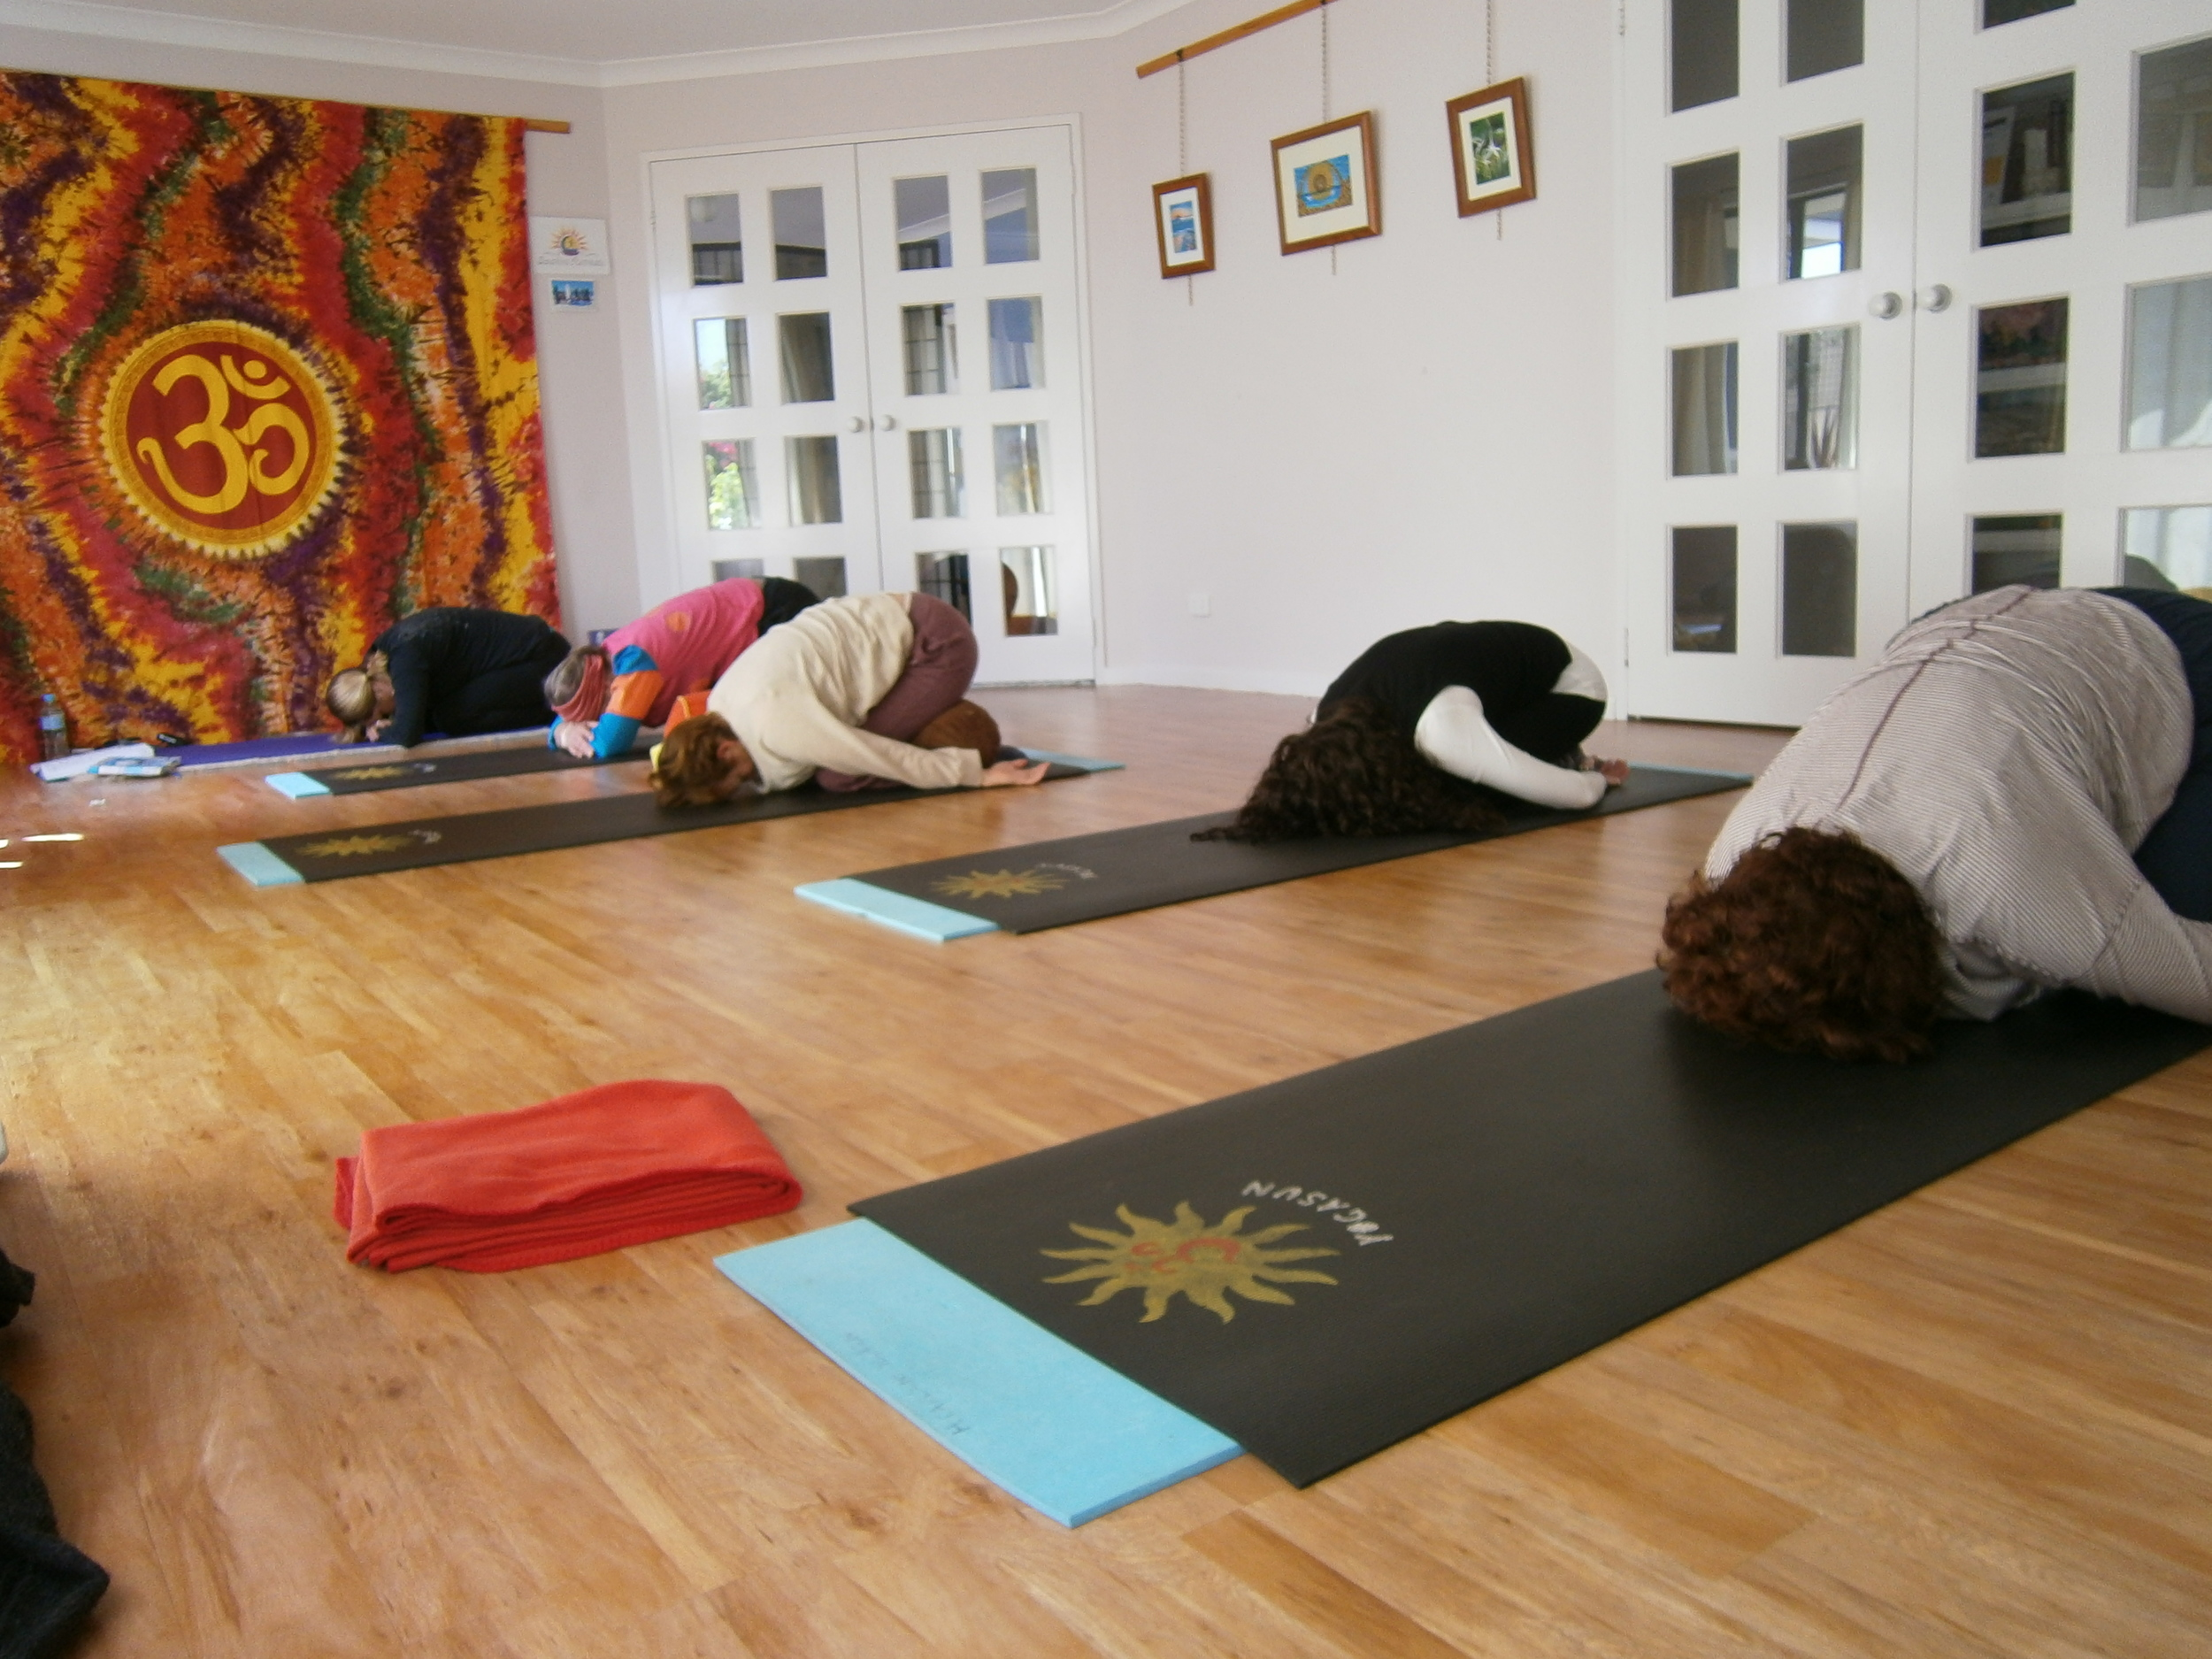 Students resting in Child Pose during a yoga class.